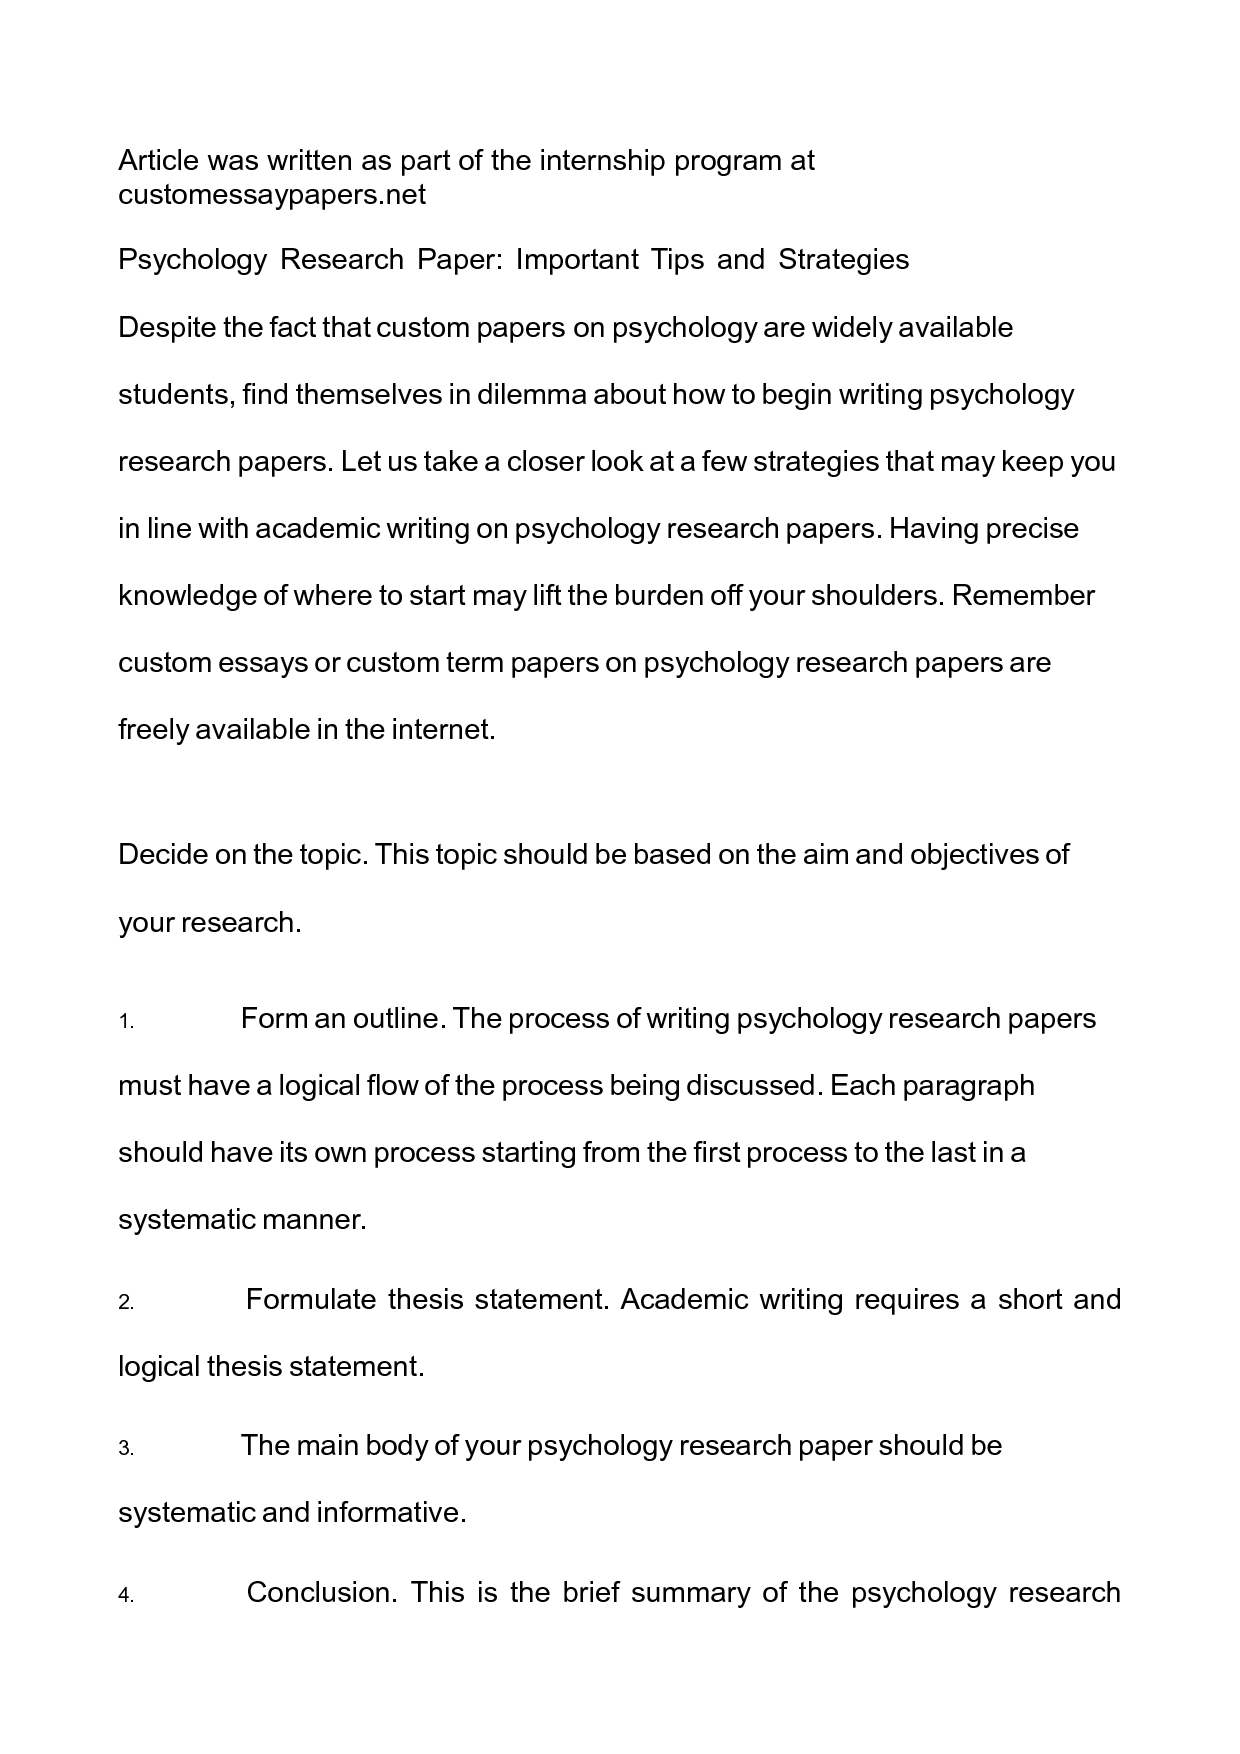 007 Psychology Research Paper Writing Services College Papers Stirring Written Full